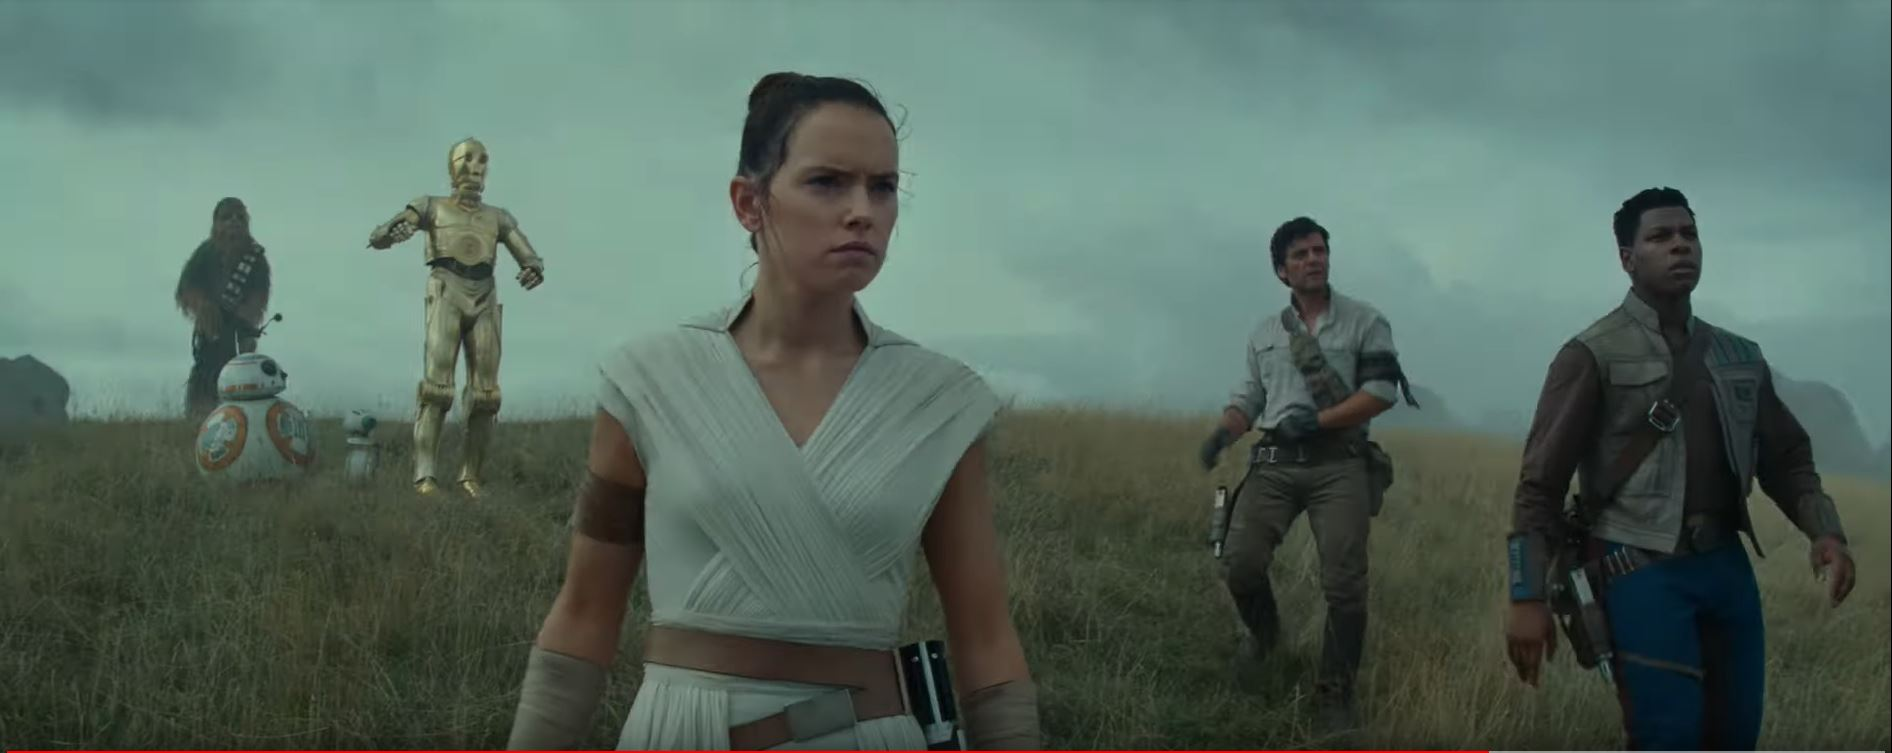 Star Wars The Rise of Skywalker Rey, Finn, Poe, C3-PO, Chewie and BB-8 on ocean planet